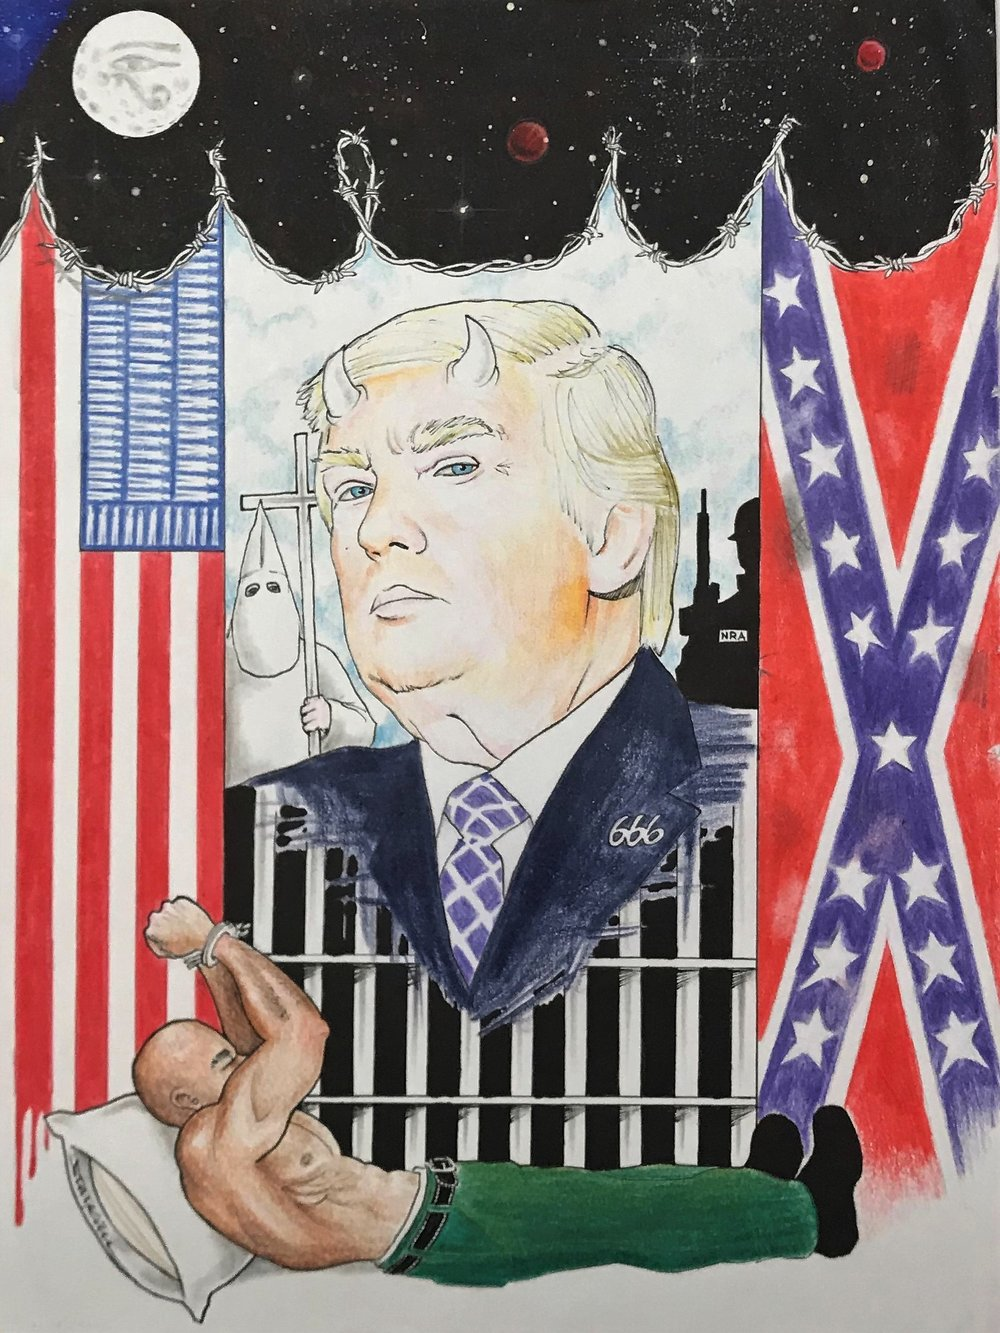 Make America Hate Again   This illustration depicts the President's overarching message: systematic oppression fueled by white supremacy and protected by the NRA. Today, America incarcerates the black and brown people that built it. With enslaved bodies replacing stars and their blood creating stripes, the American flag has gone from symbolizing freedom in its early days to symbolizing imprisonment.